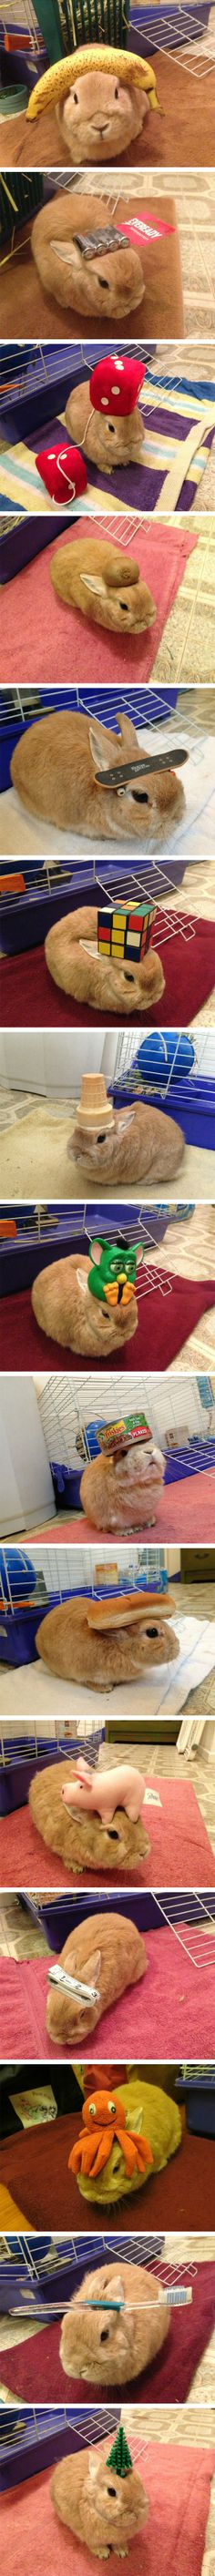 I do this to babies all the time. If I had a bunny, I would probably do this to my bunny.